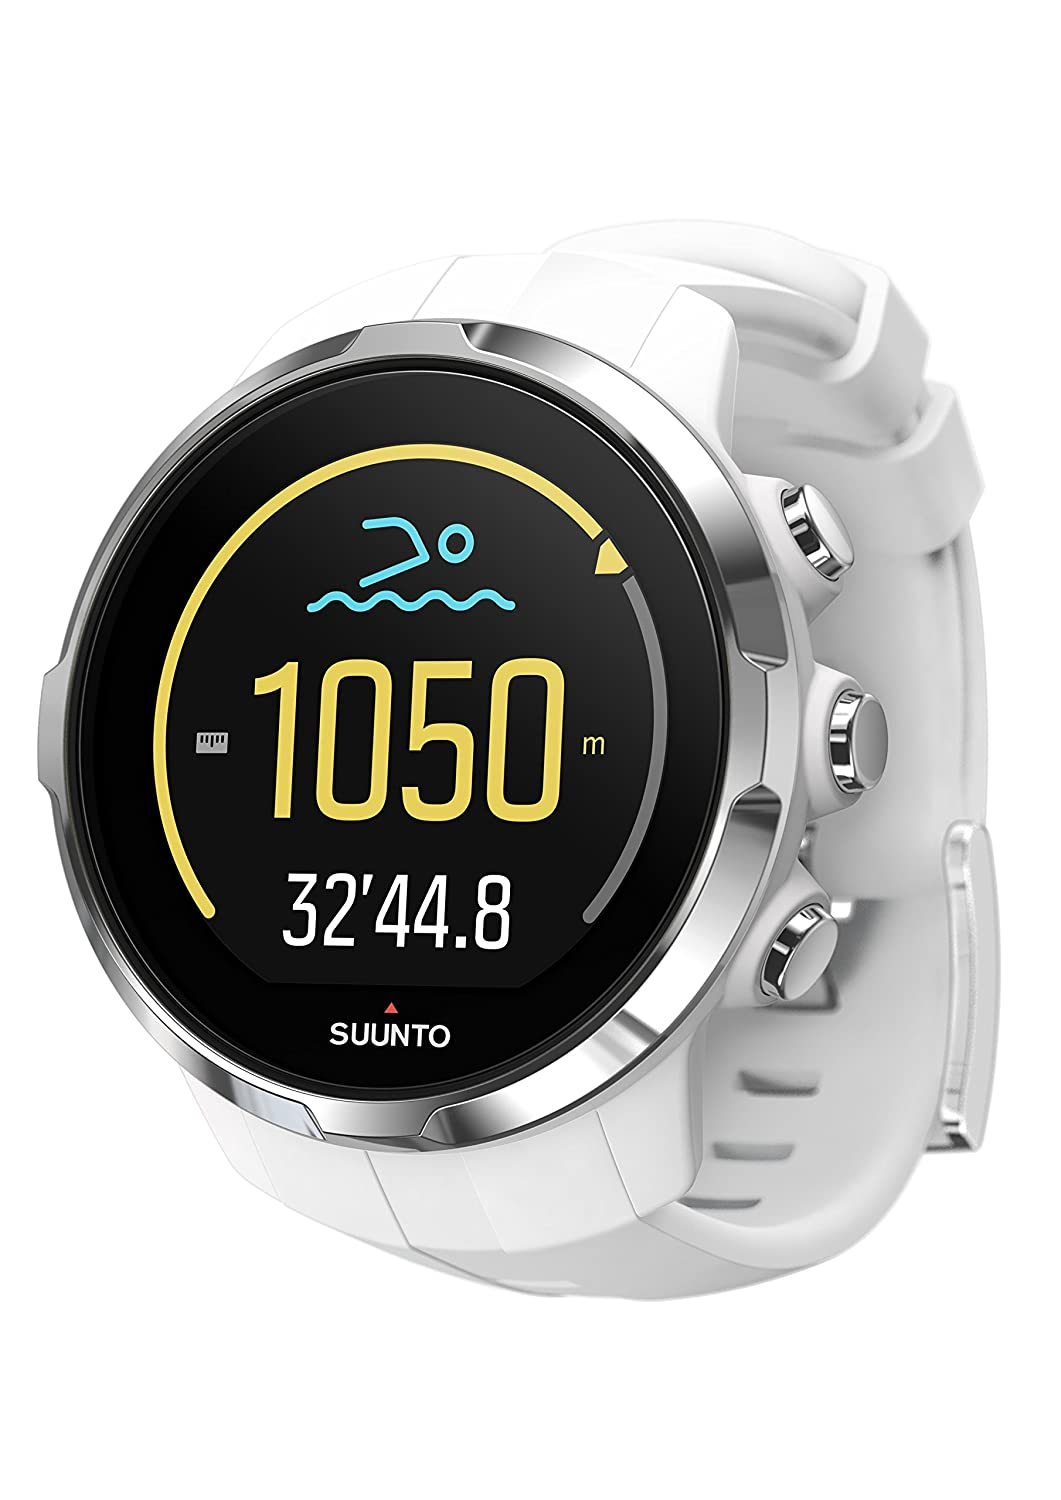 Suunto Sportuhr amazon